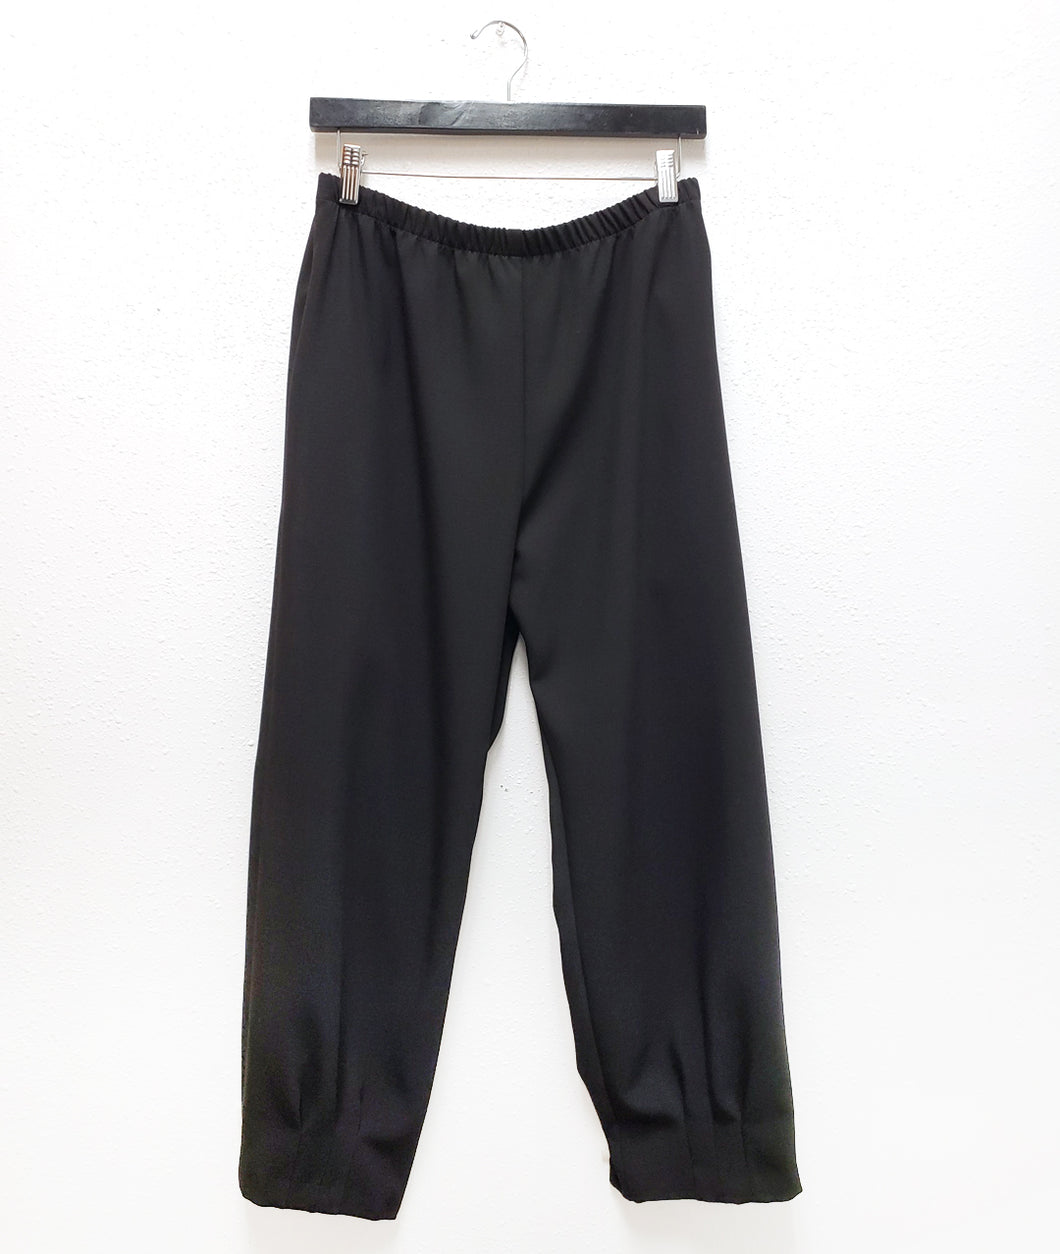 black straight leg pant with a dart detail at the ankle hem